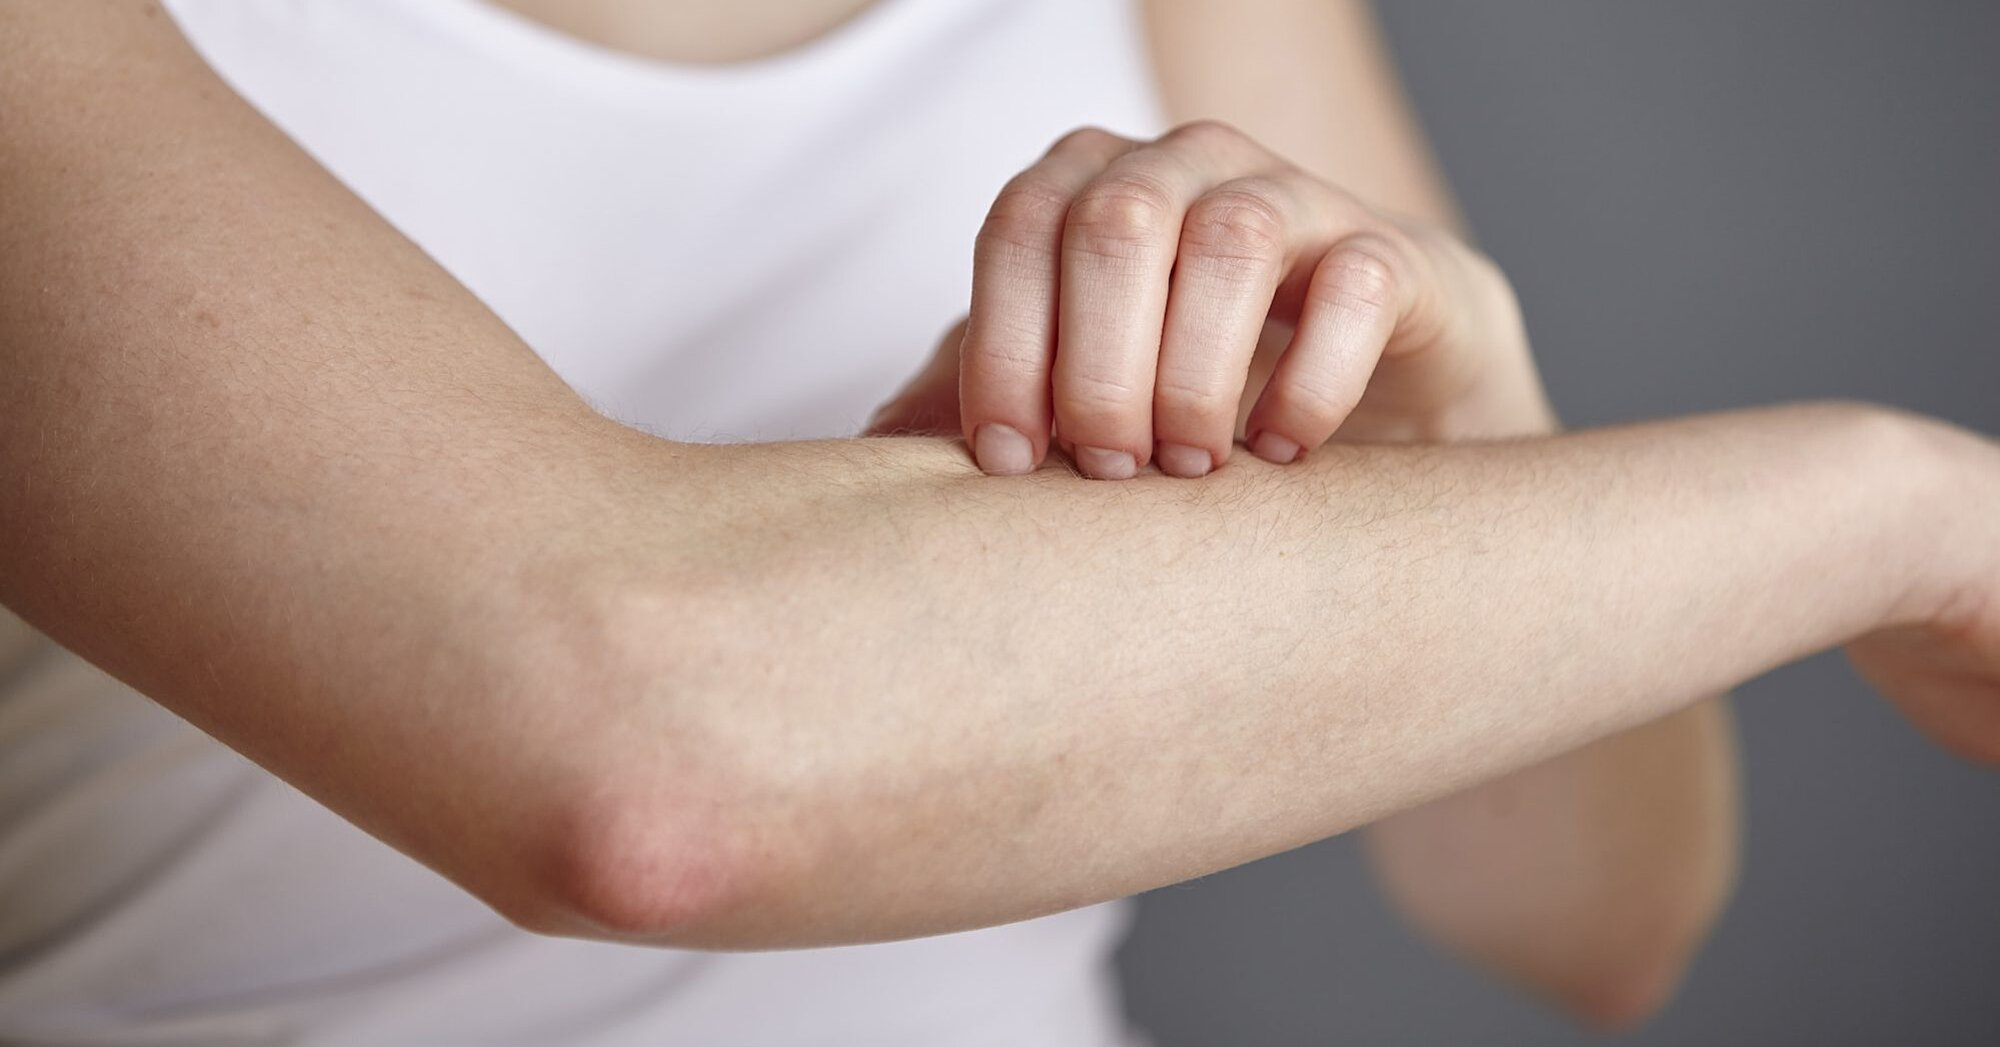 Watch Out for These 5 Culprits That Make Irritated Skin Worse